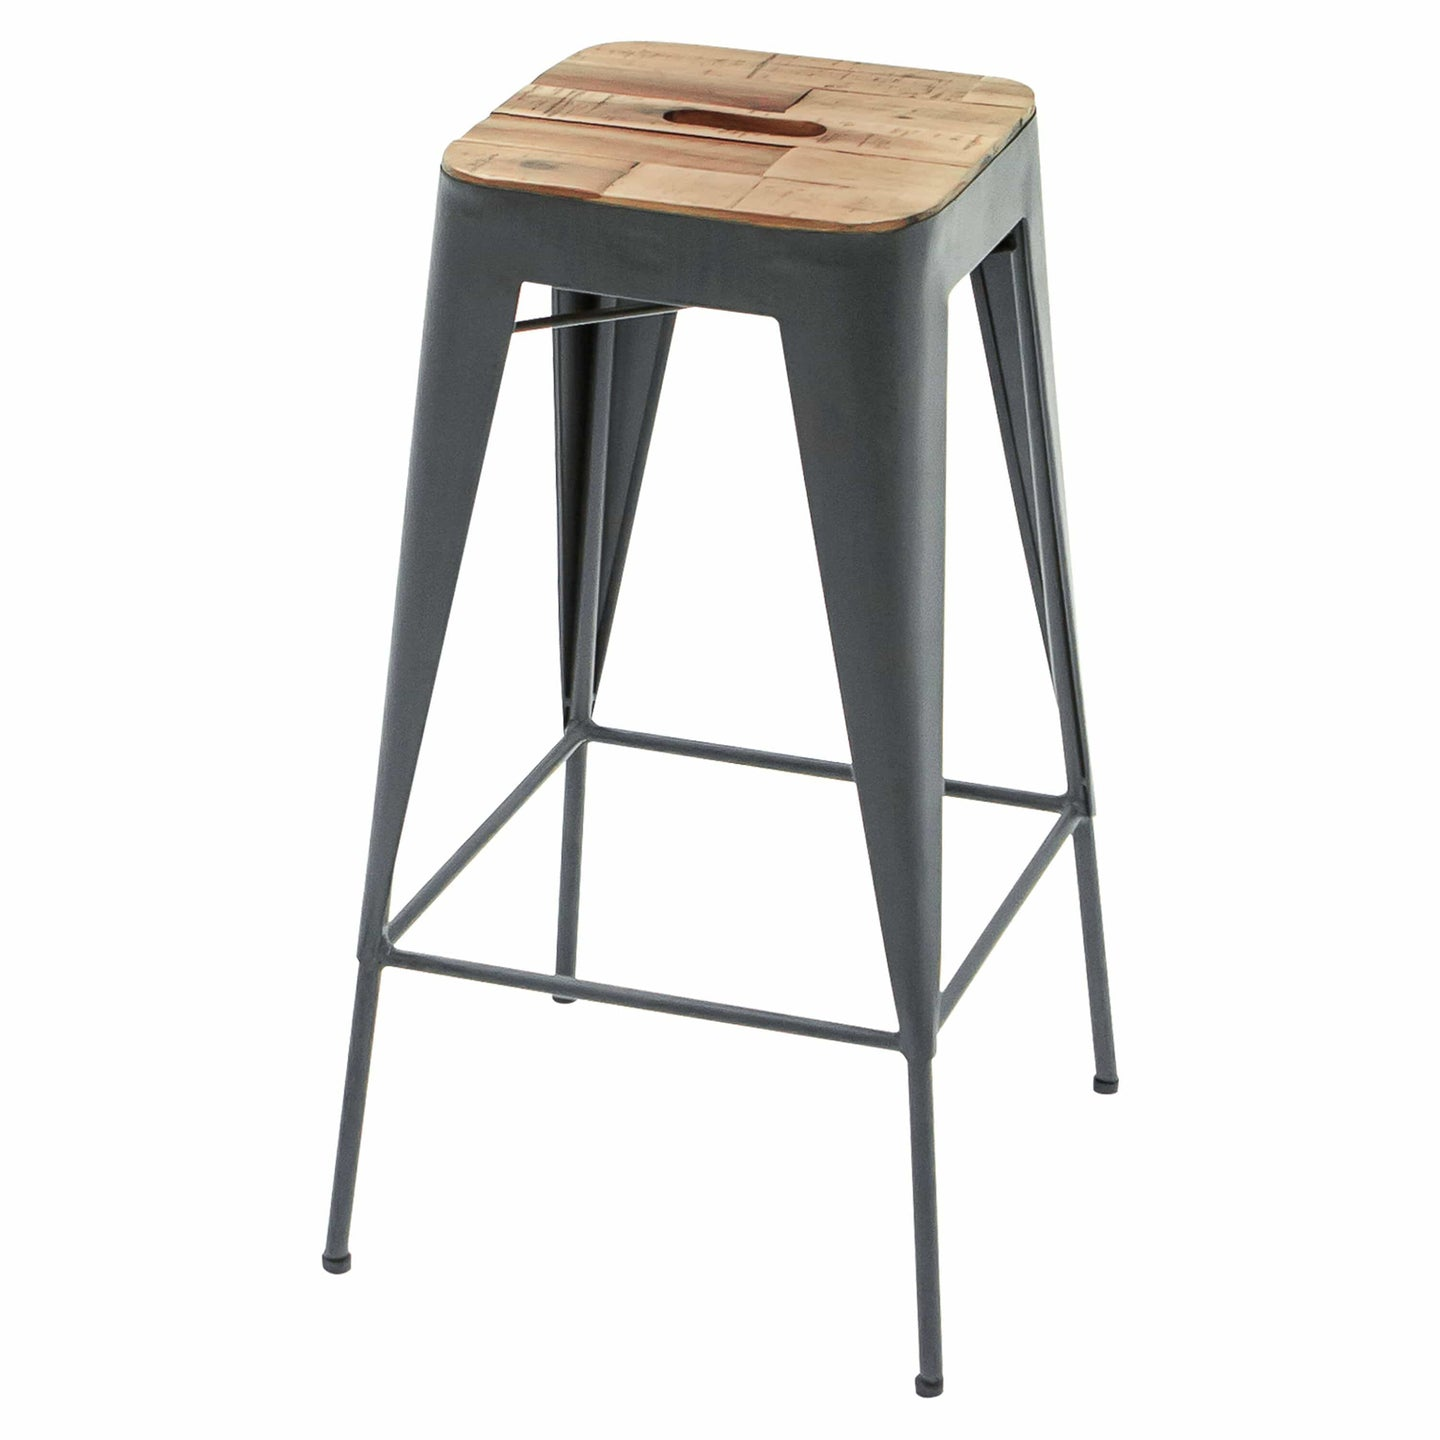 Yosemite Acacia Wood and Metal Stackable 30